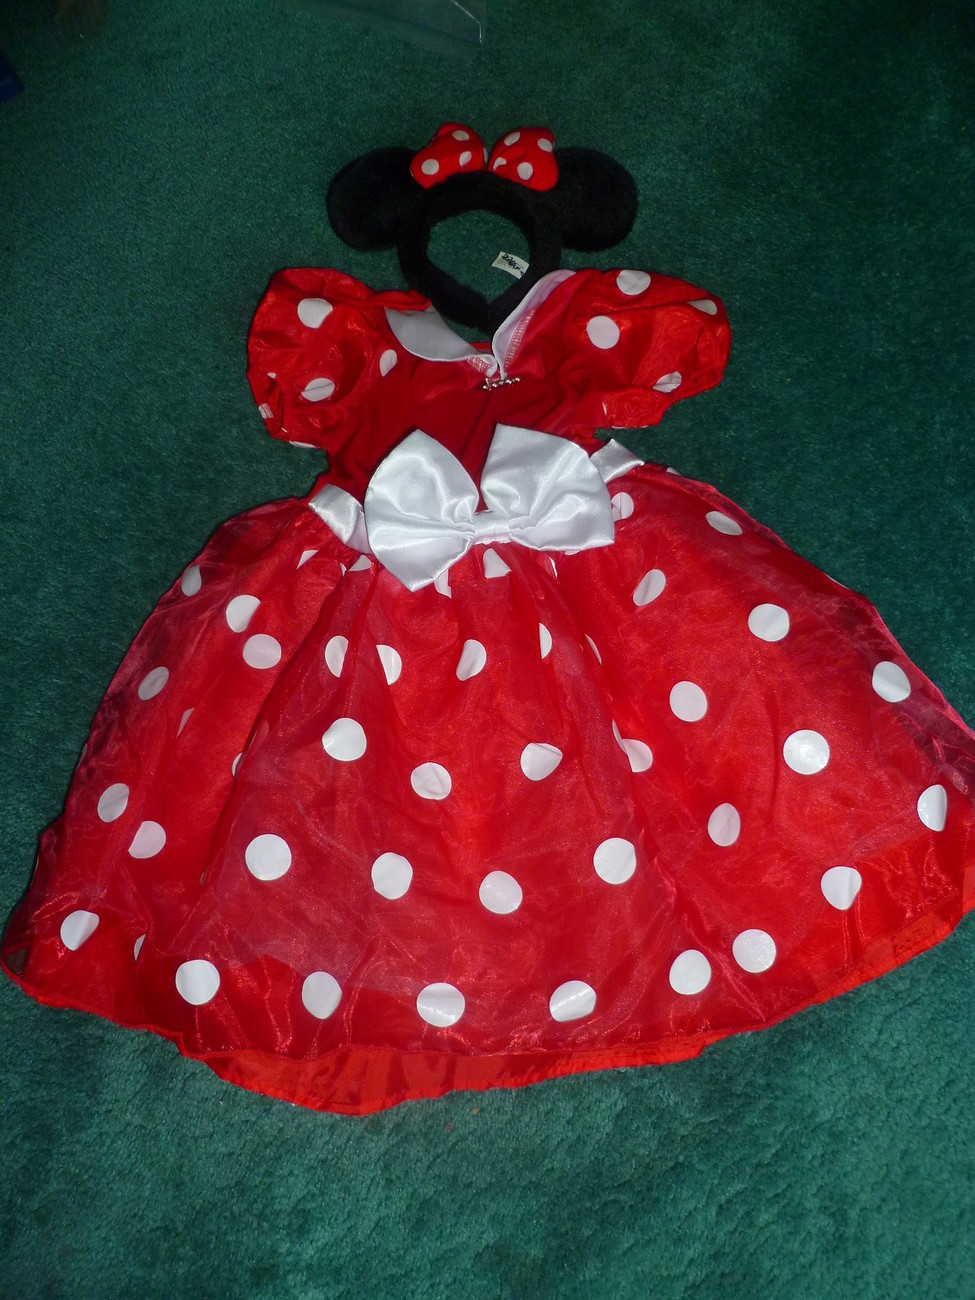 DISNEY STORE MINNIE MOUSE HALLOWEEN COSTUME SIZE 4 - 5 WITH EARS